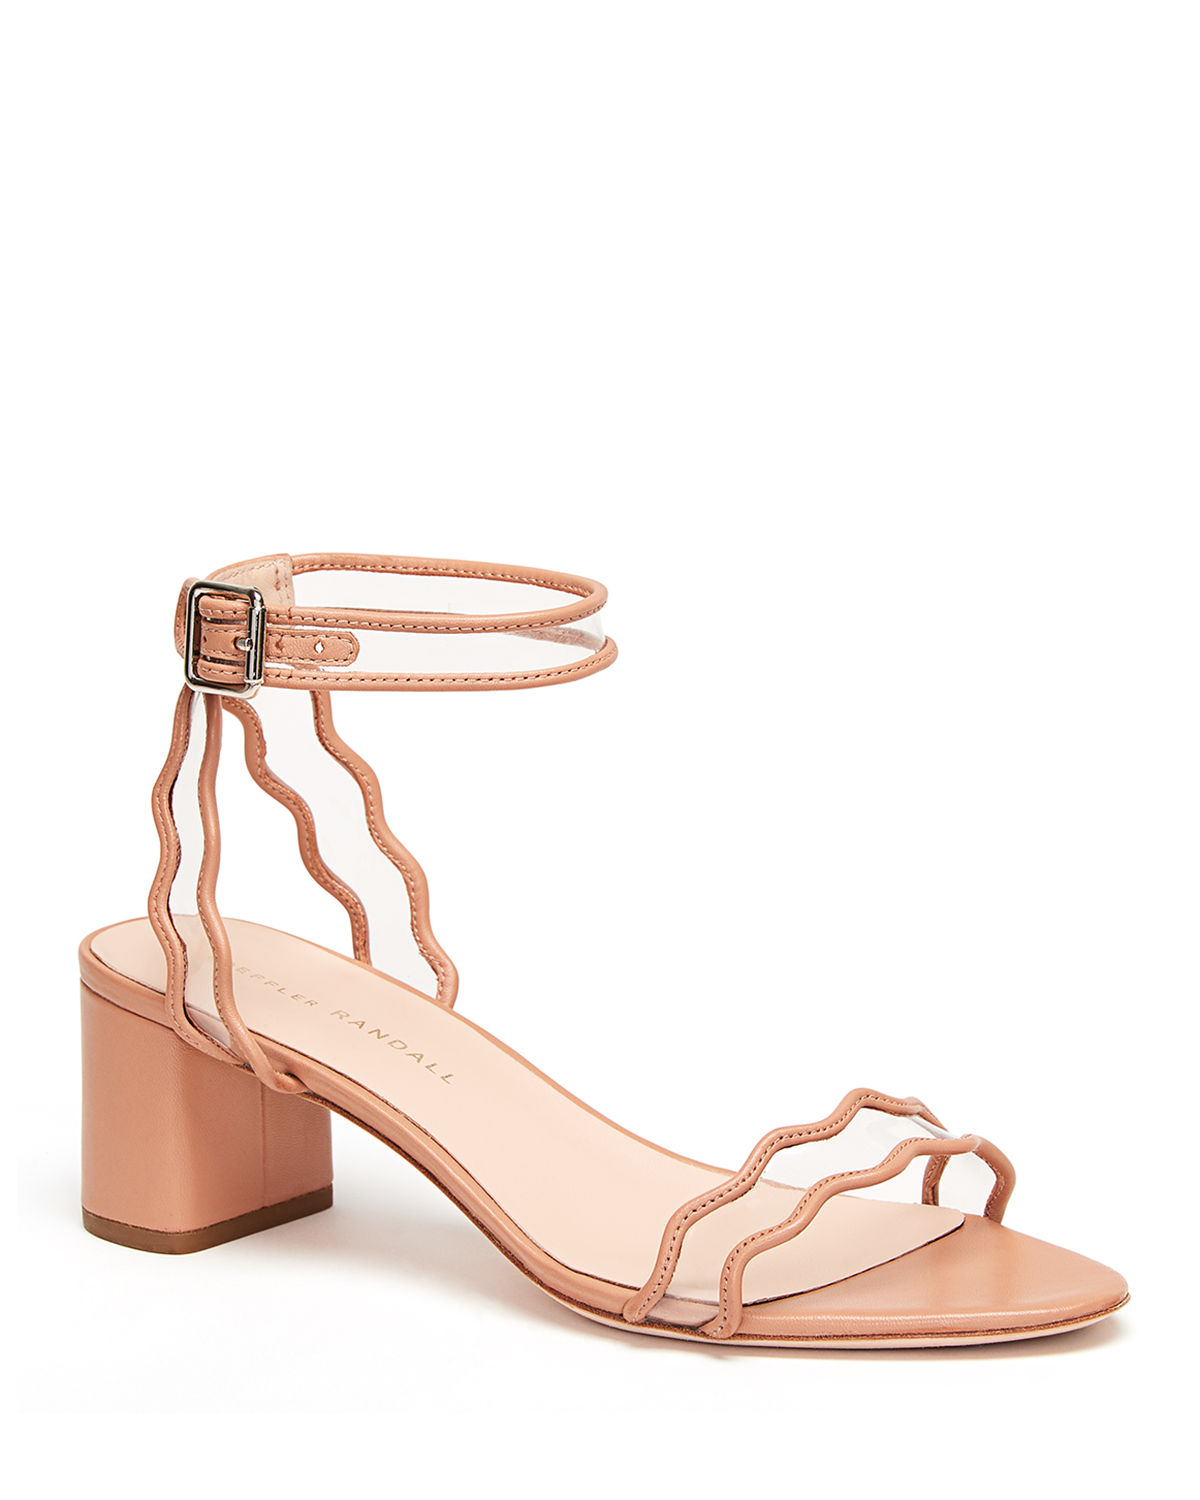 Loeffler Randall Sandals WAVY CLEAR-STRAP LEATHER SANDALS